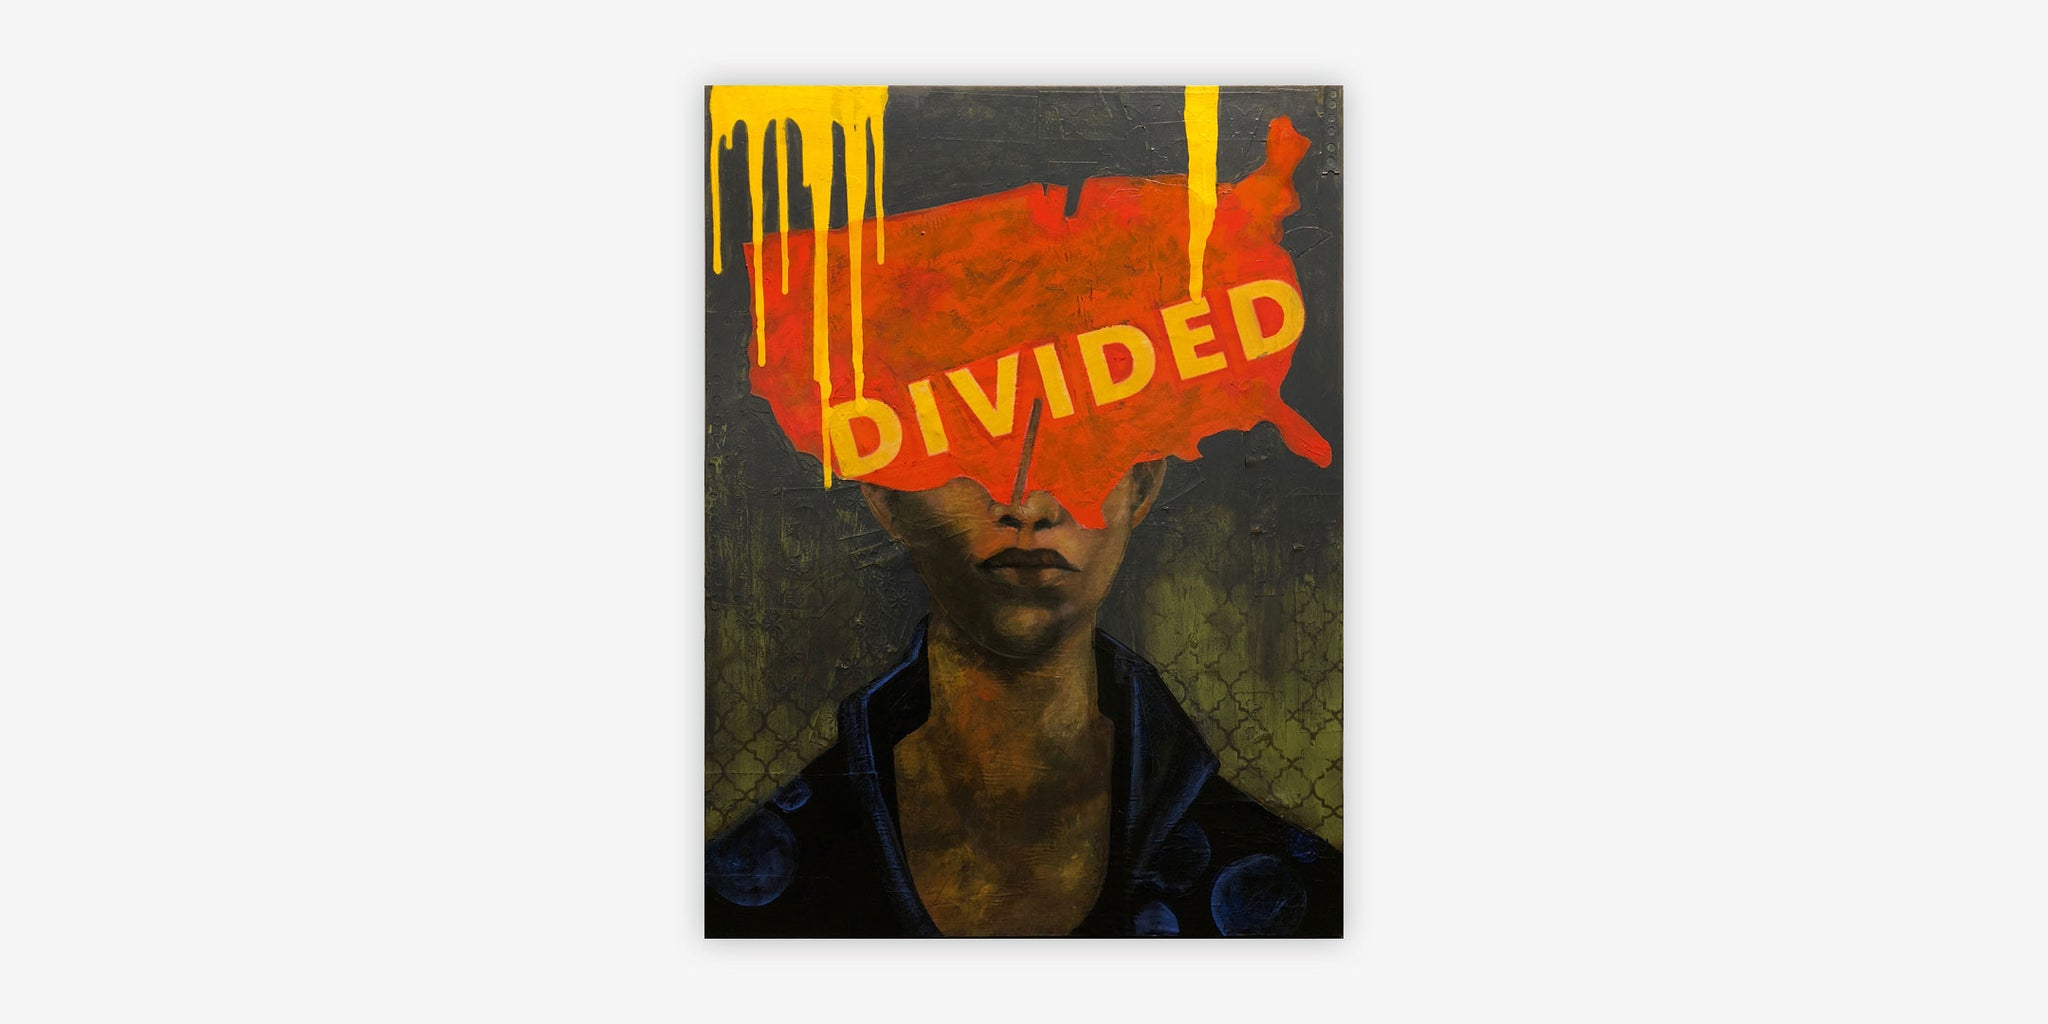 ART/C09 – United we stand, divided we fall